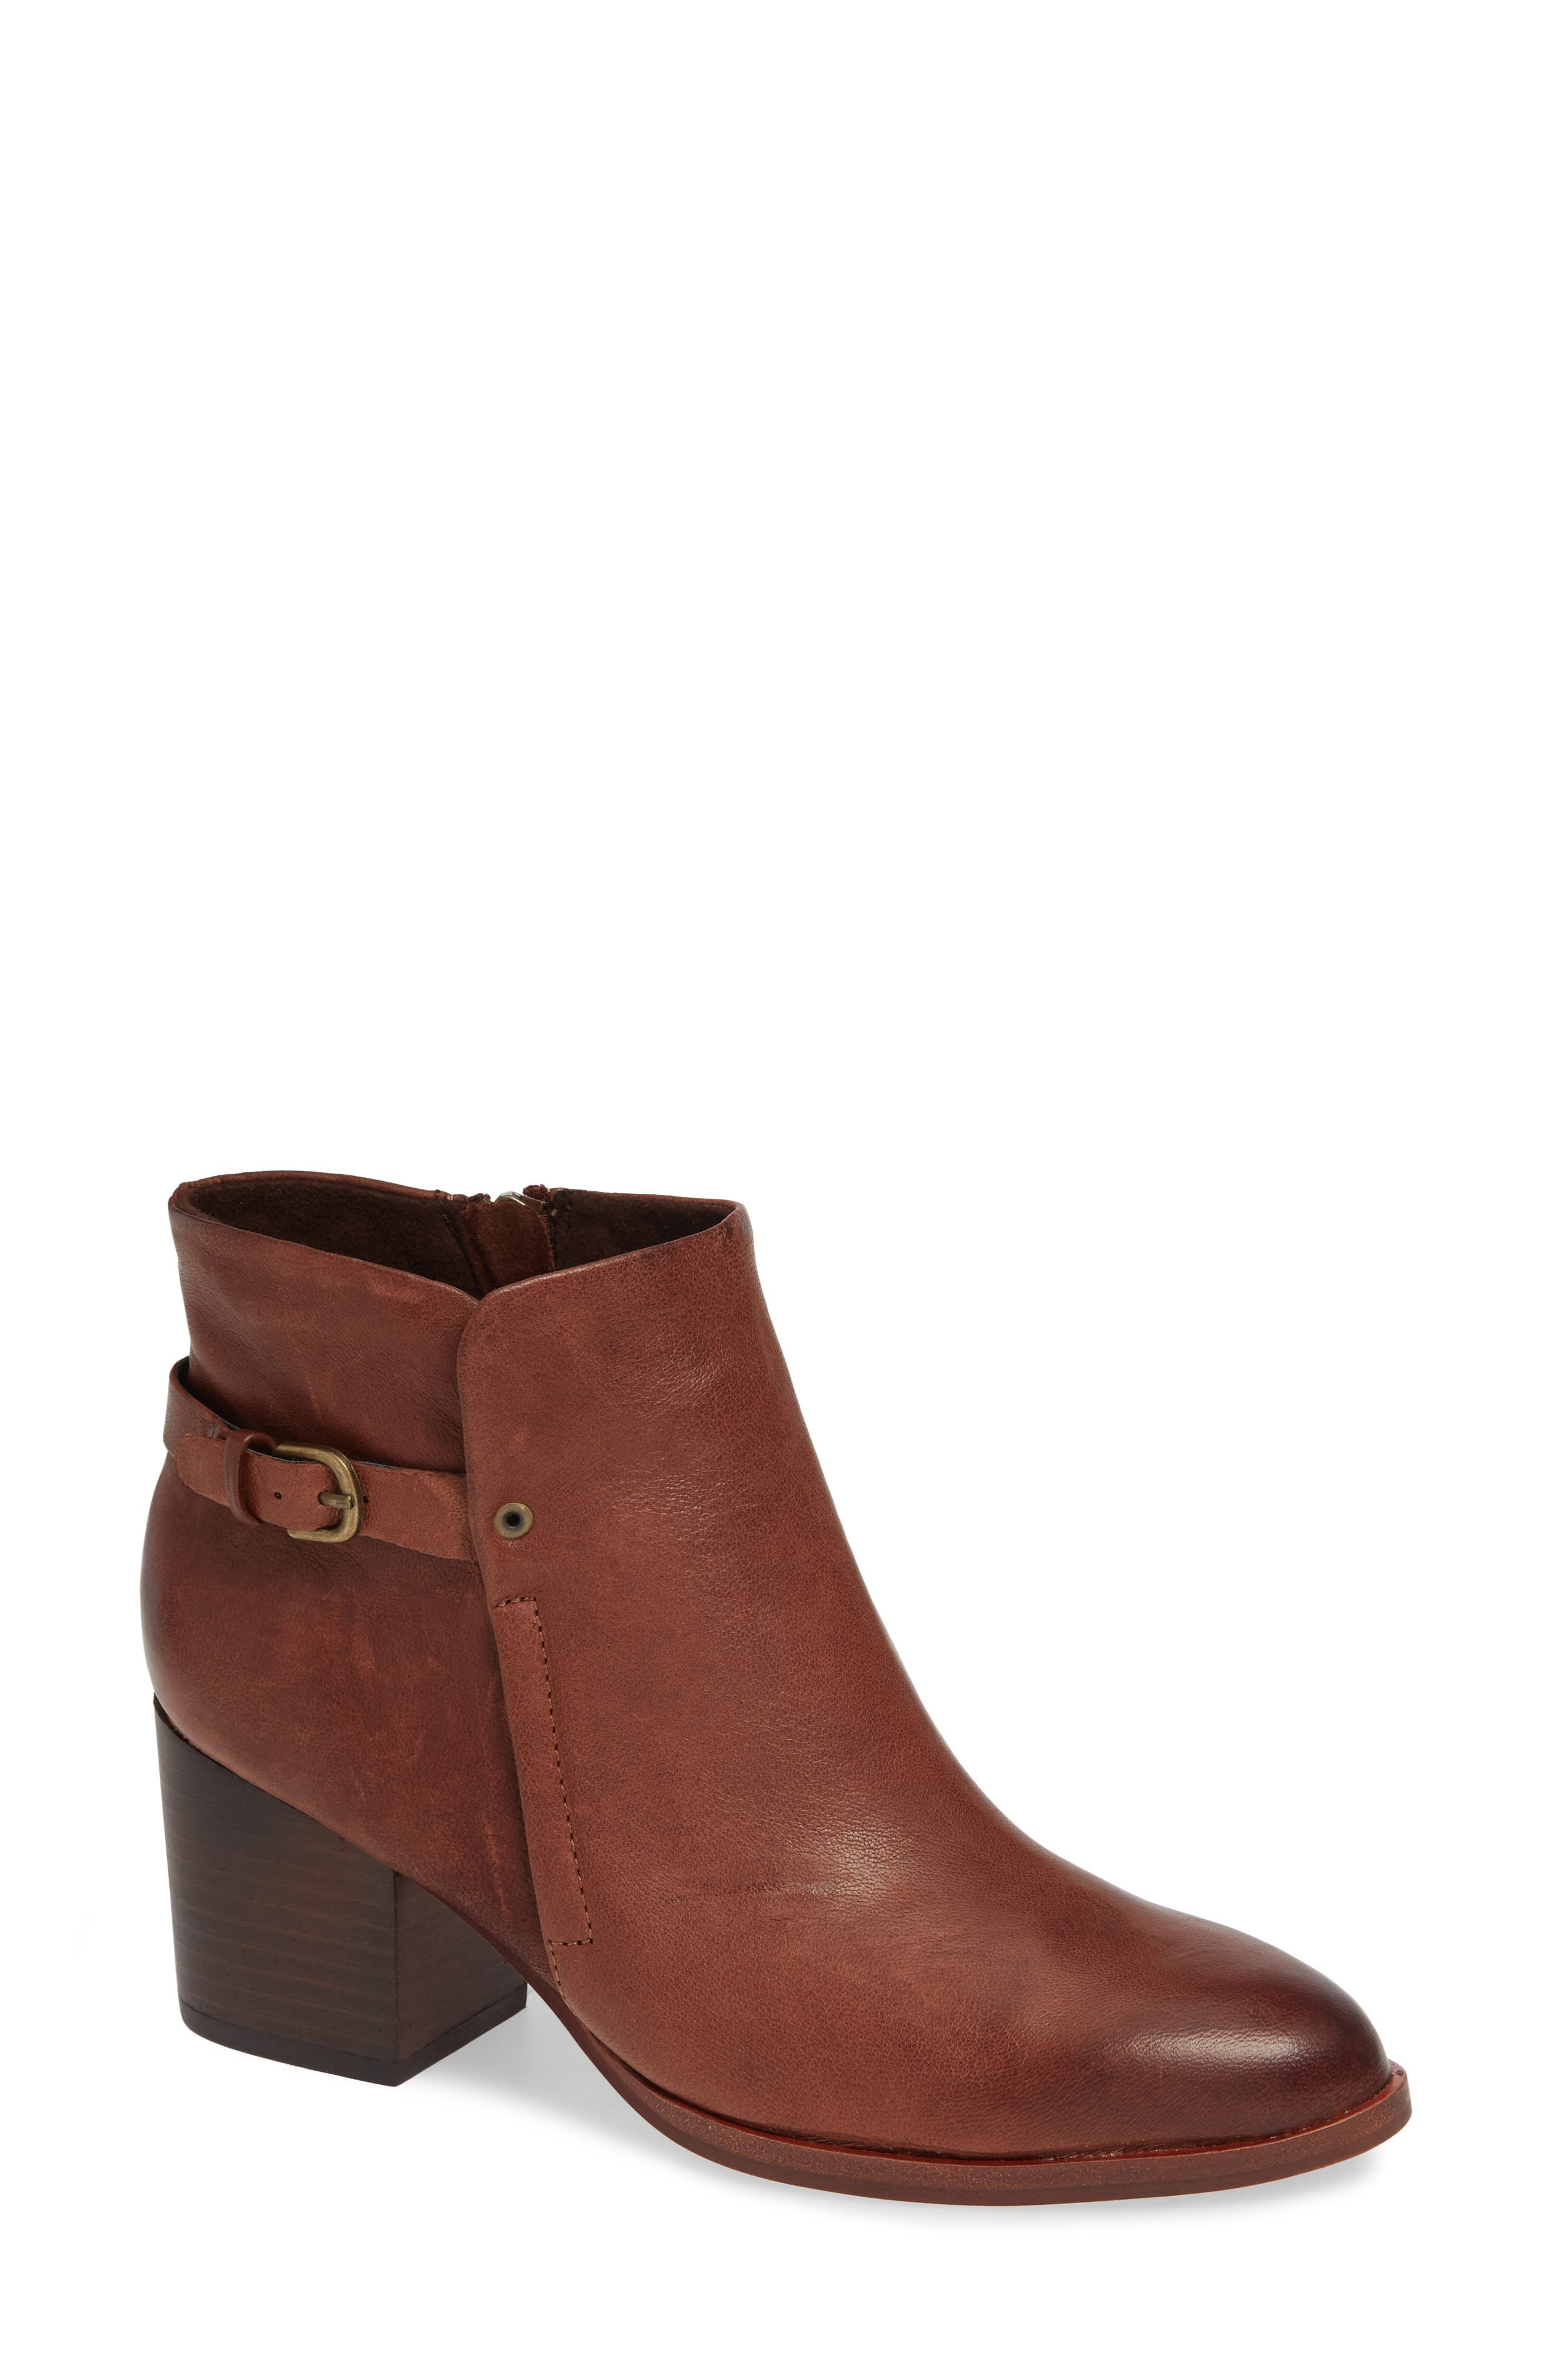 Isola Orlinda Block Heel Bootie, Brown